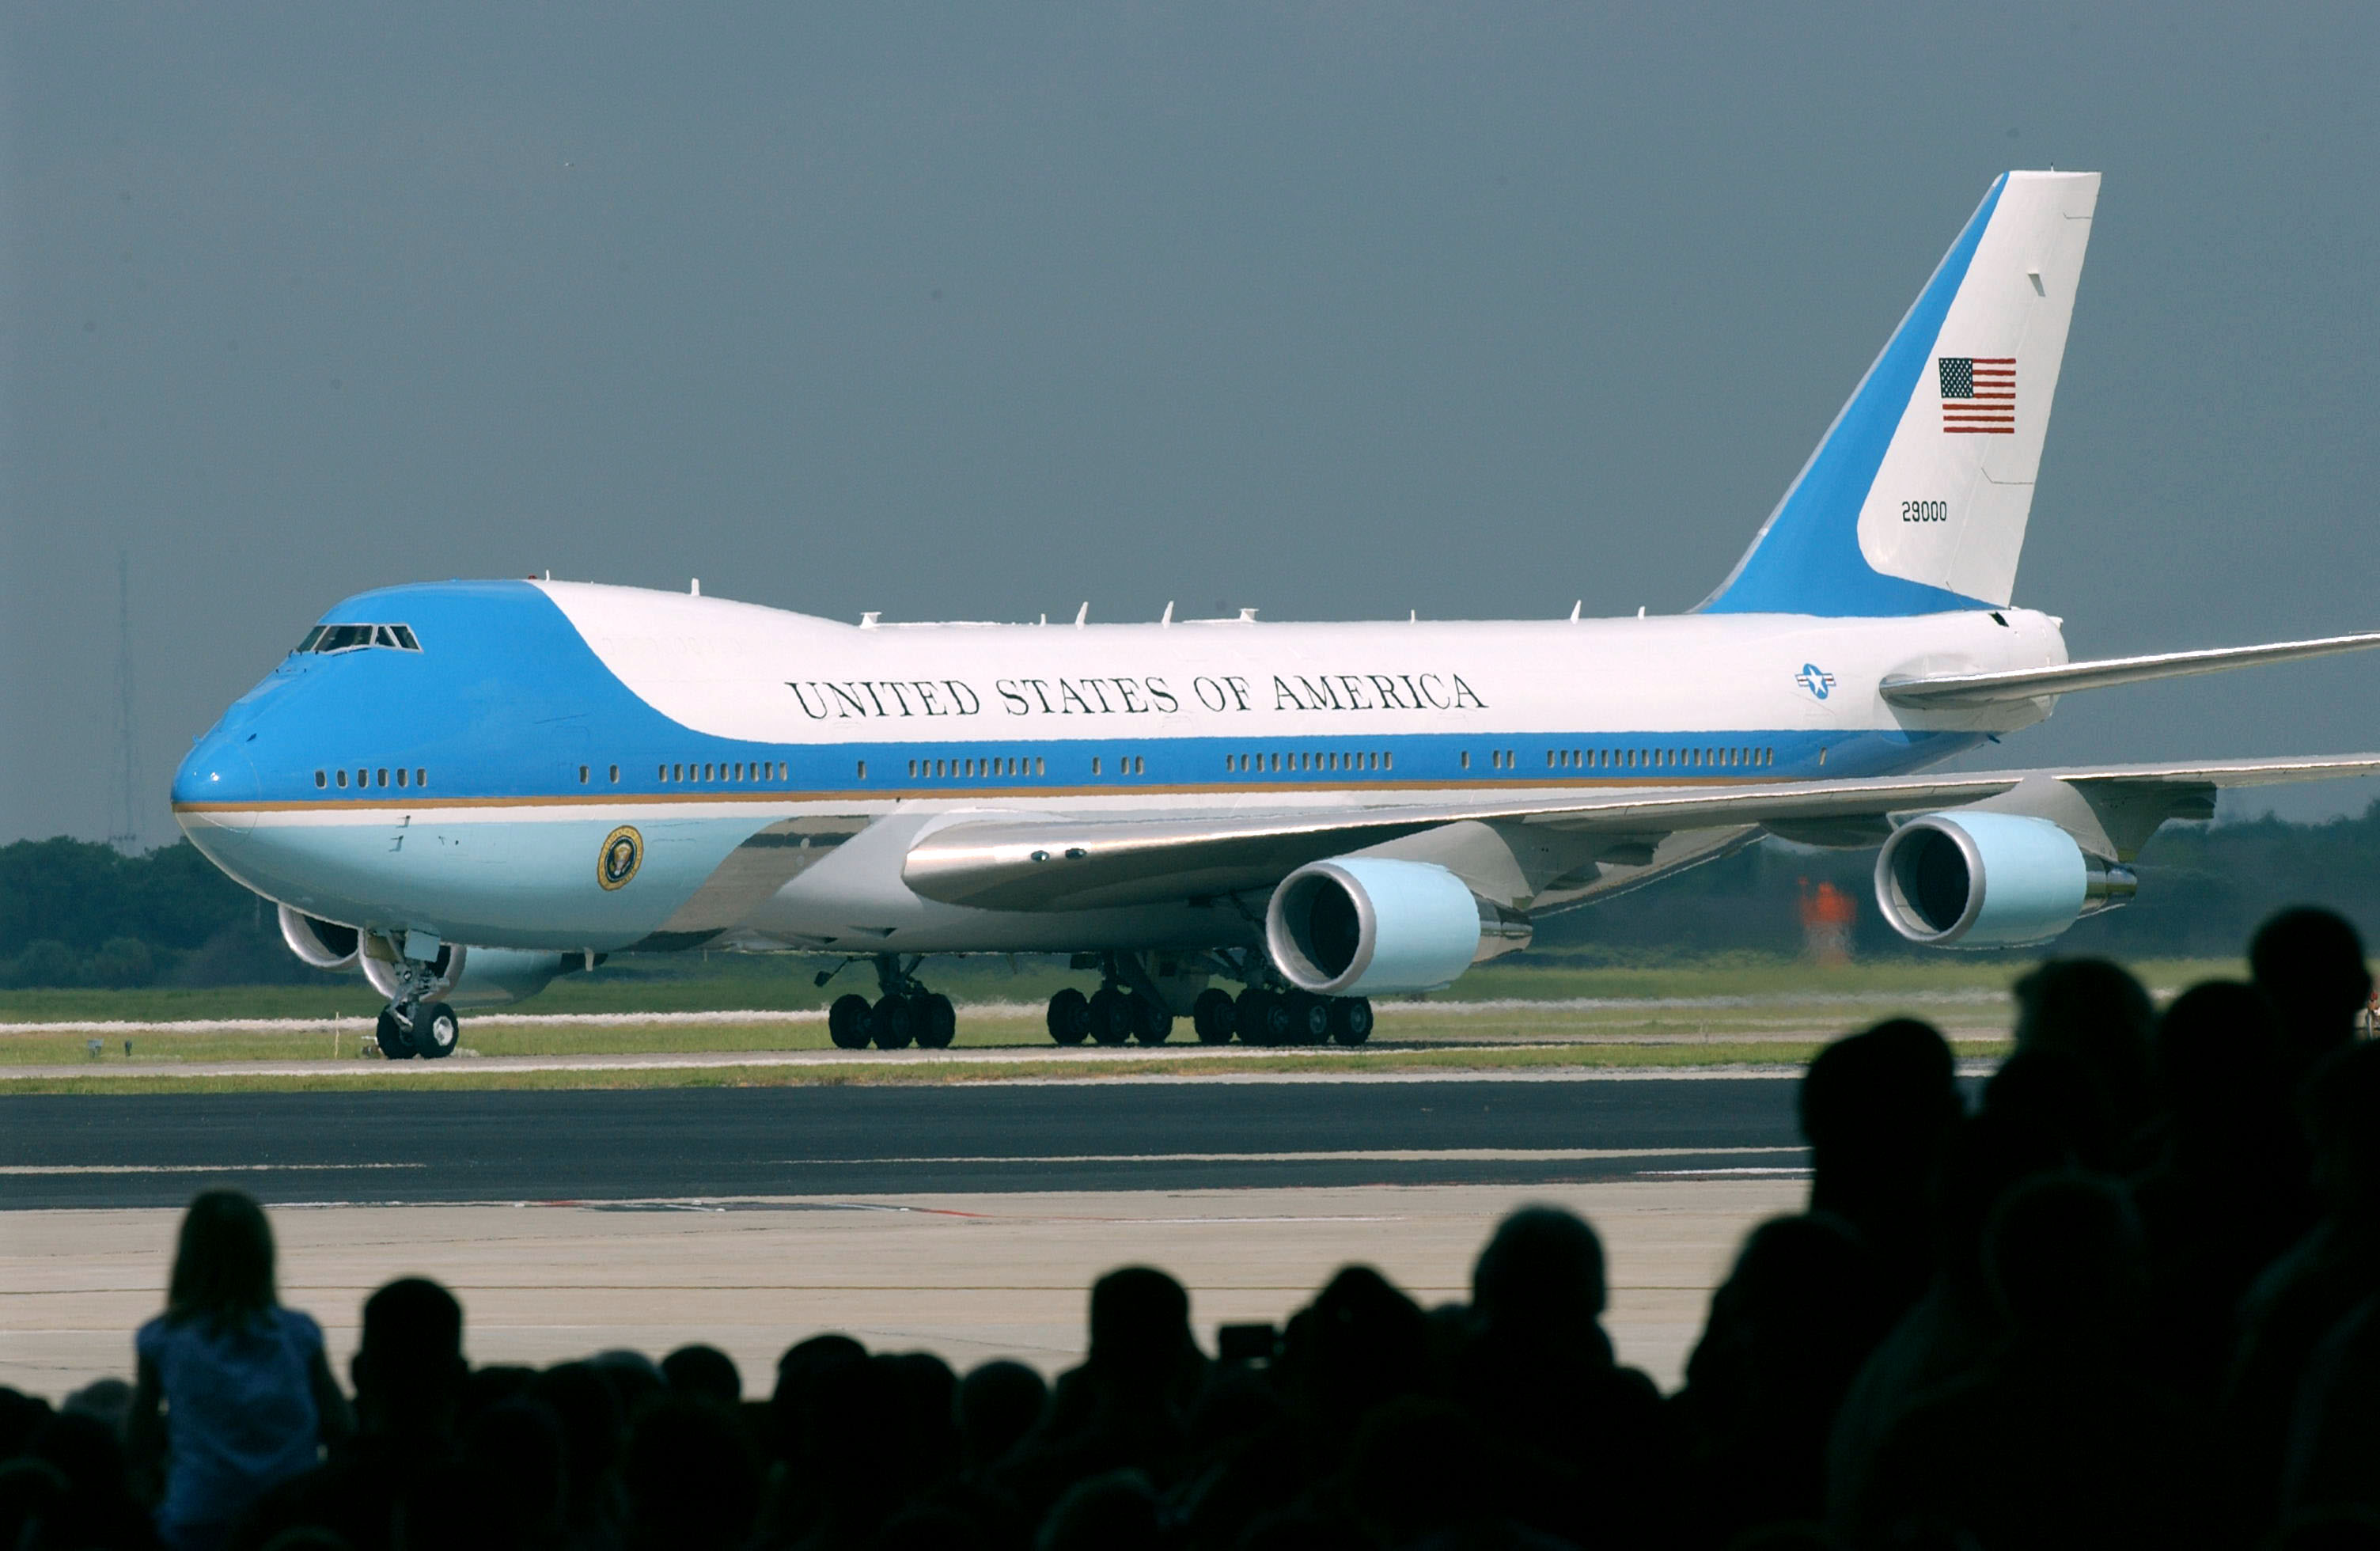 Congress may pick a fight over an important feature left off new Air Force One planes Featured